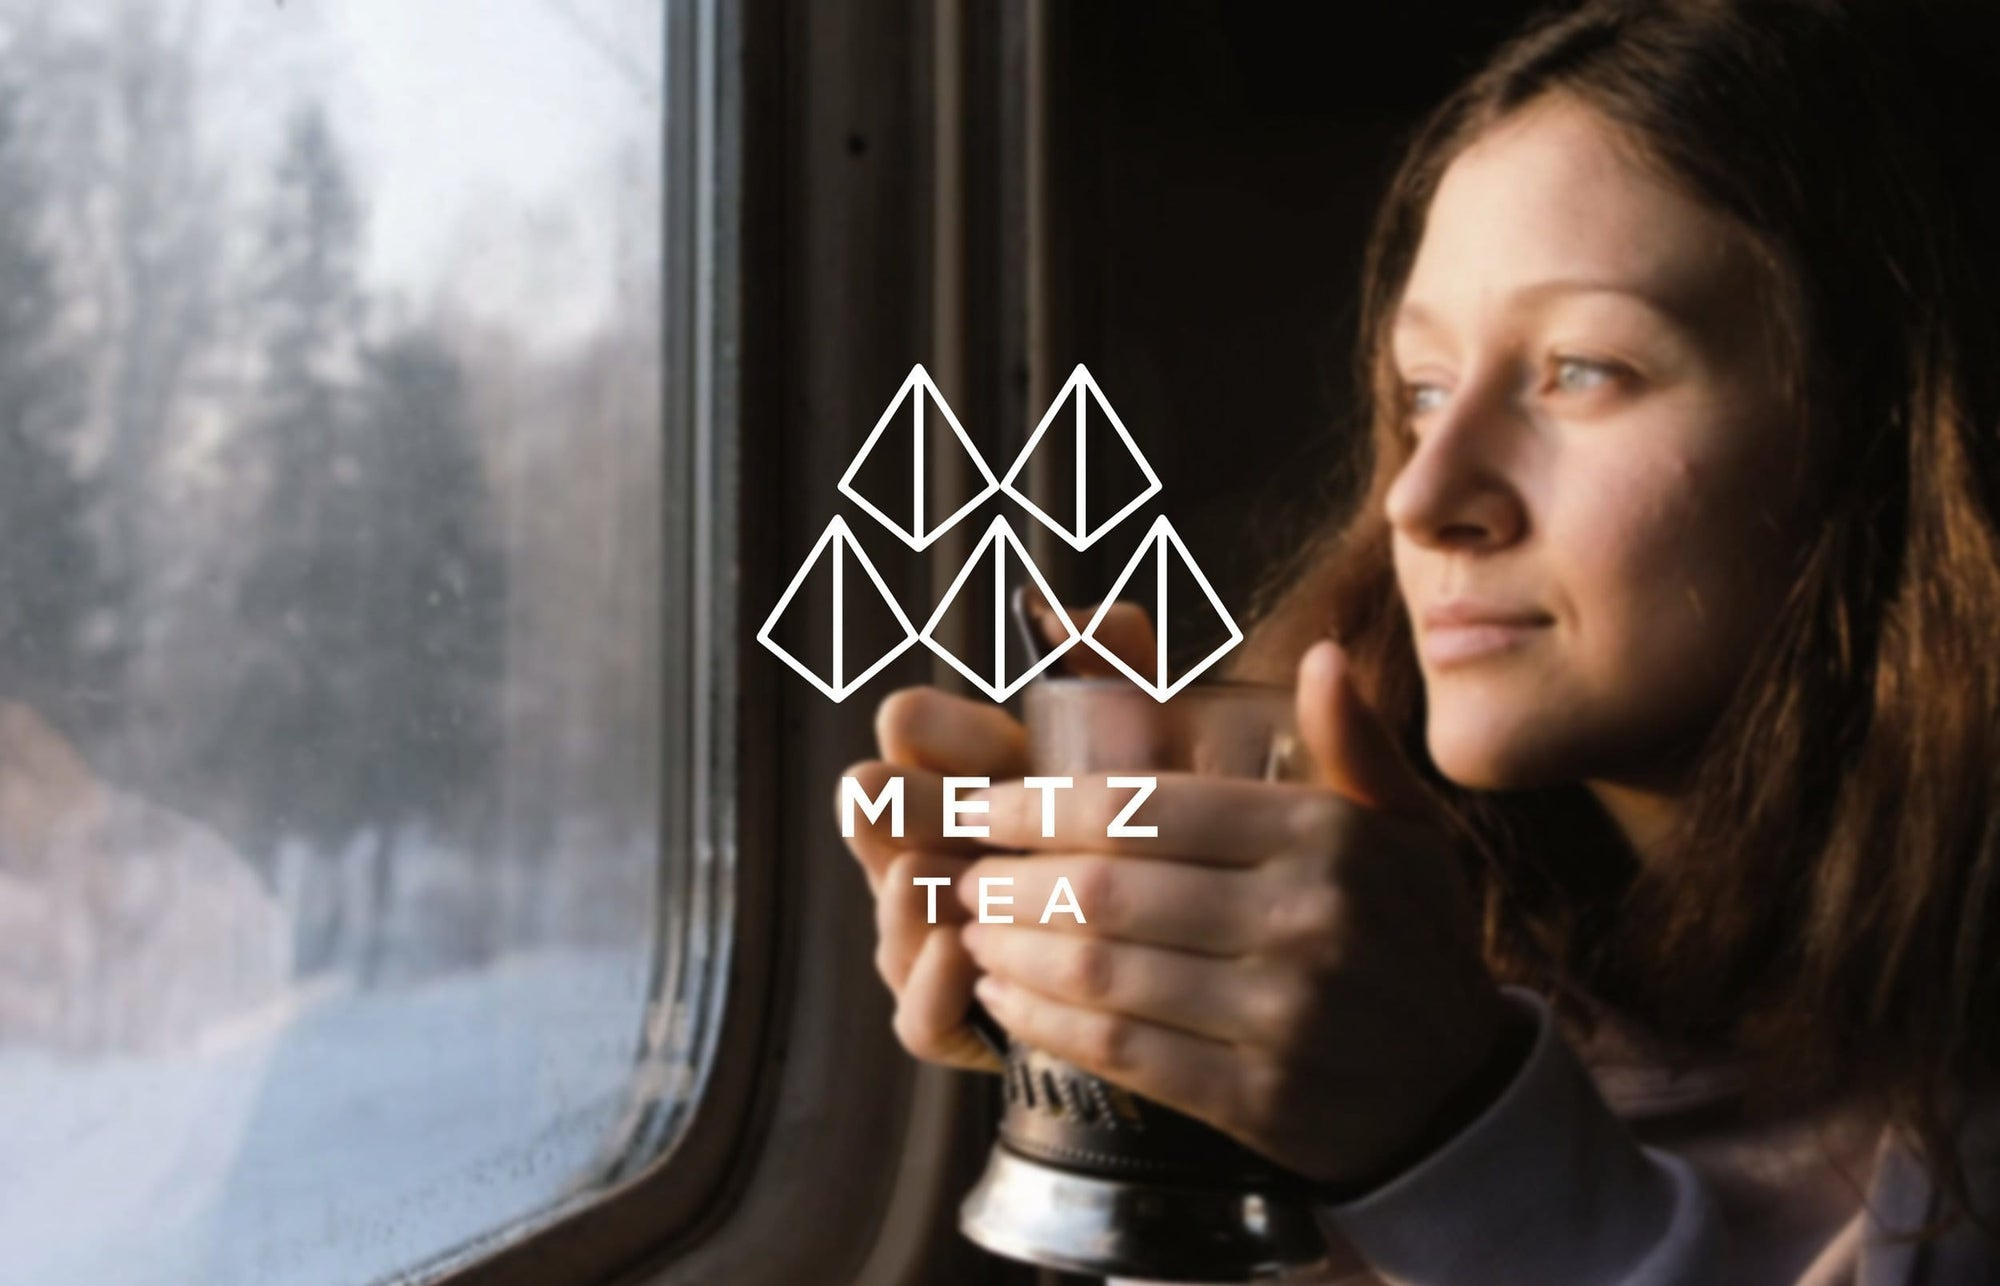 METZ Luxury Tea-VIVA Scandinavia (Canada)